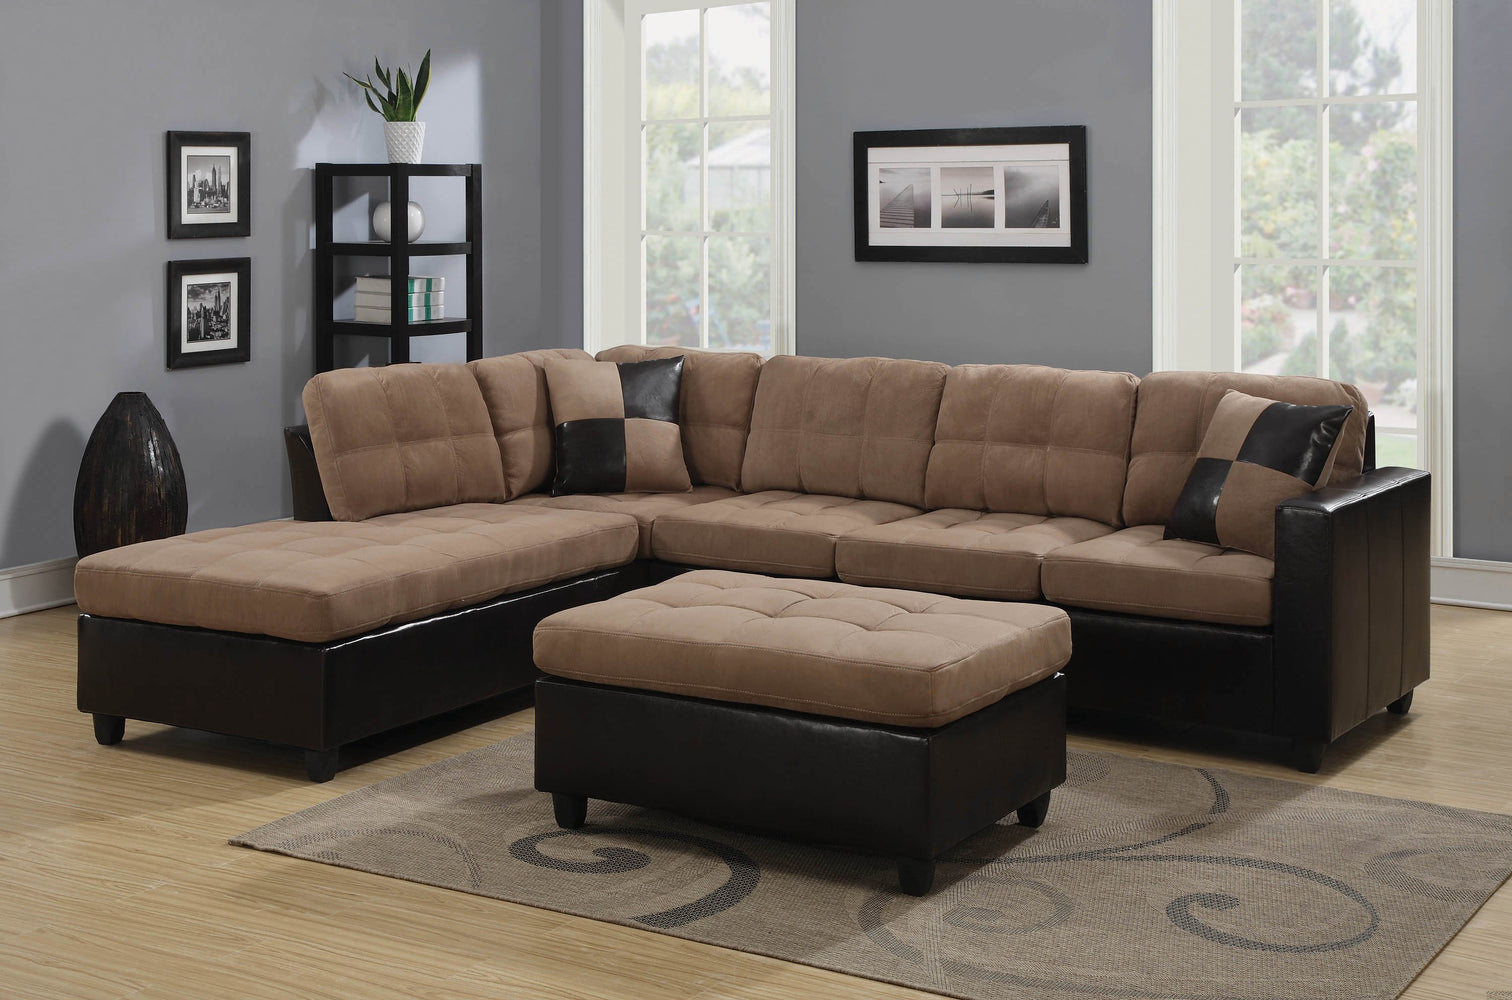 Mallory_Casual_Tan_Sectional_1